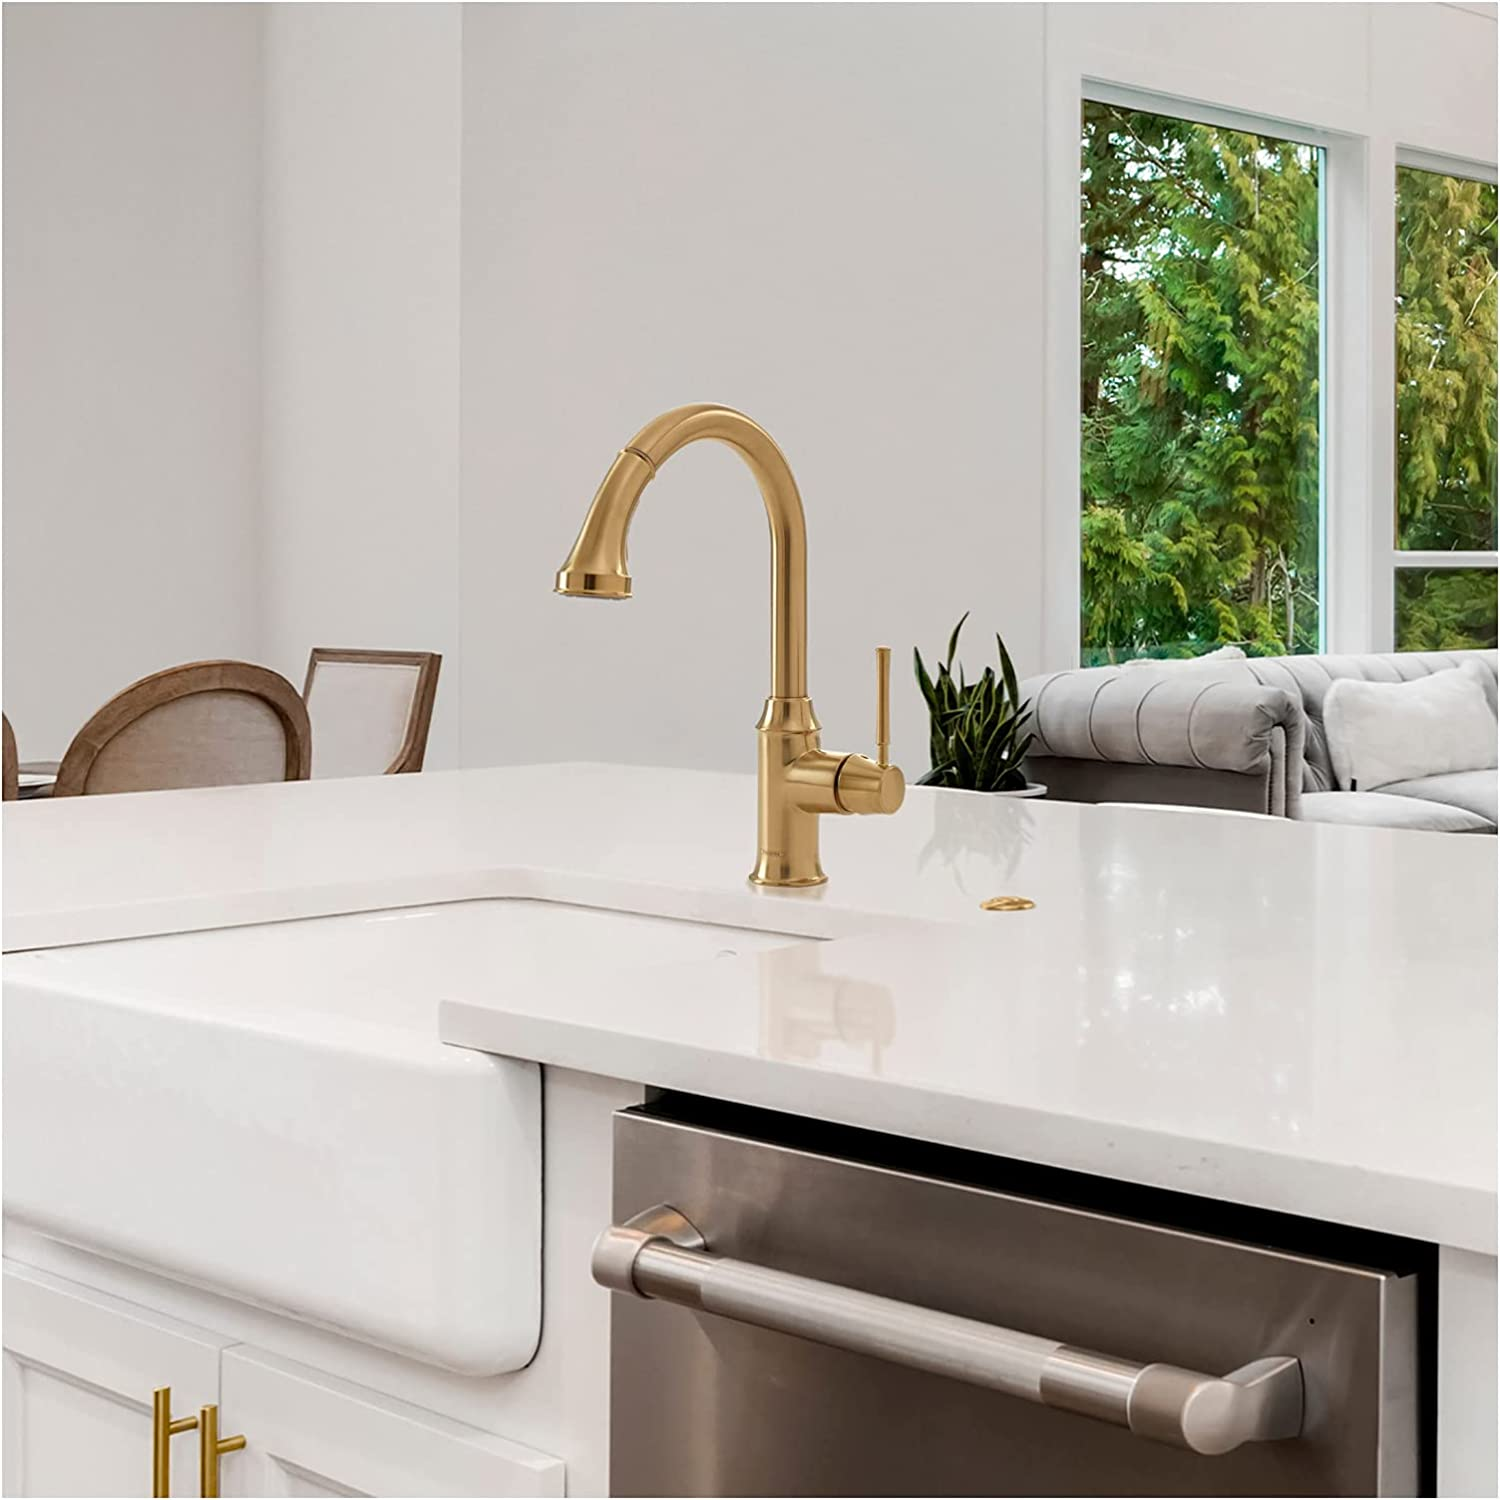 Buy Hansgrohe Talis C Kitchen Faucet 1 Handle 15 Inch Tall Pull Down Sprayer In Brushed Gold Optic 04215250 Online In Indonesia B0858myvf9